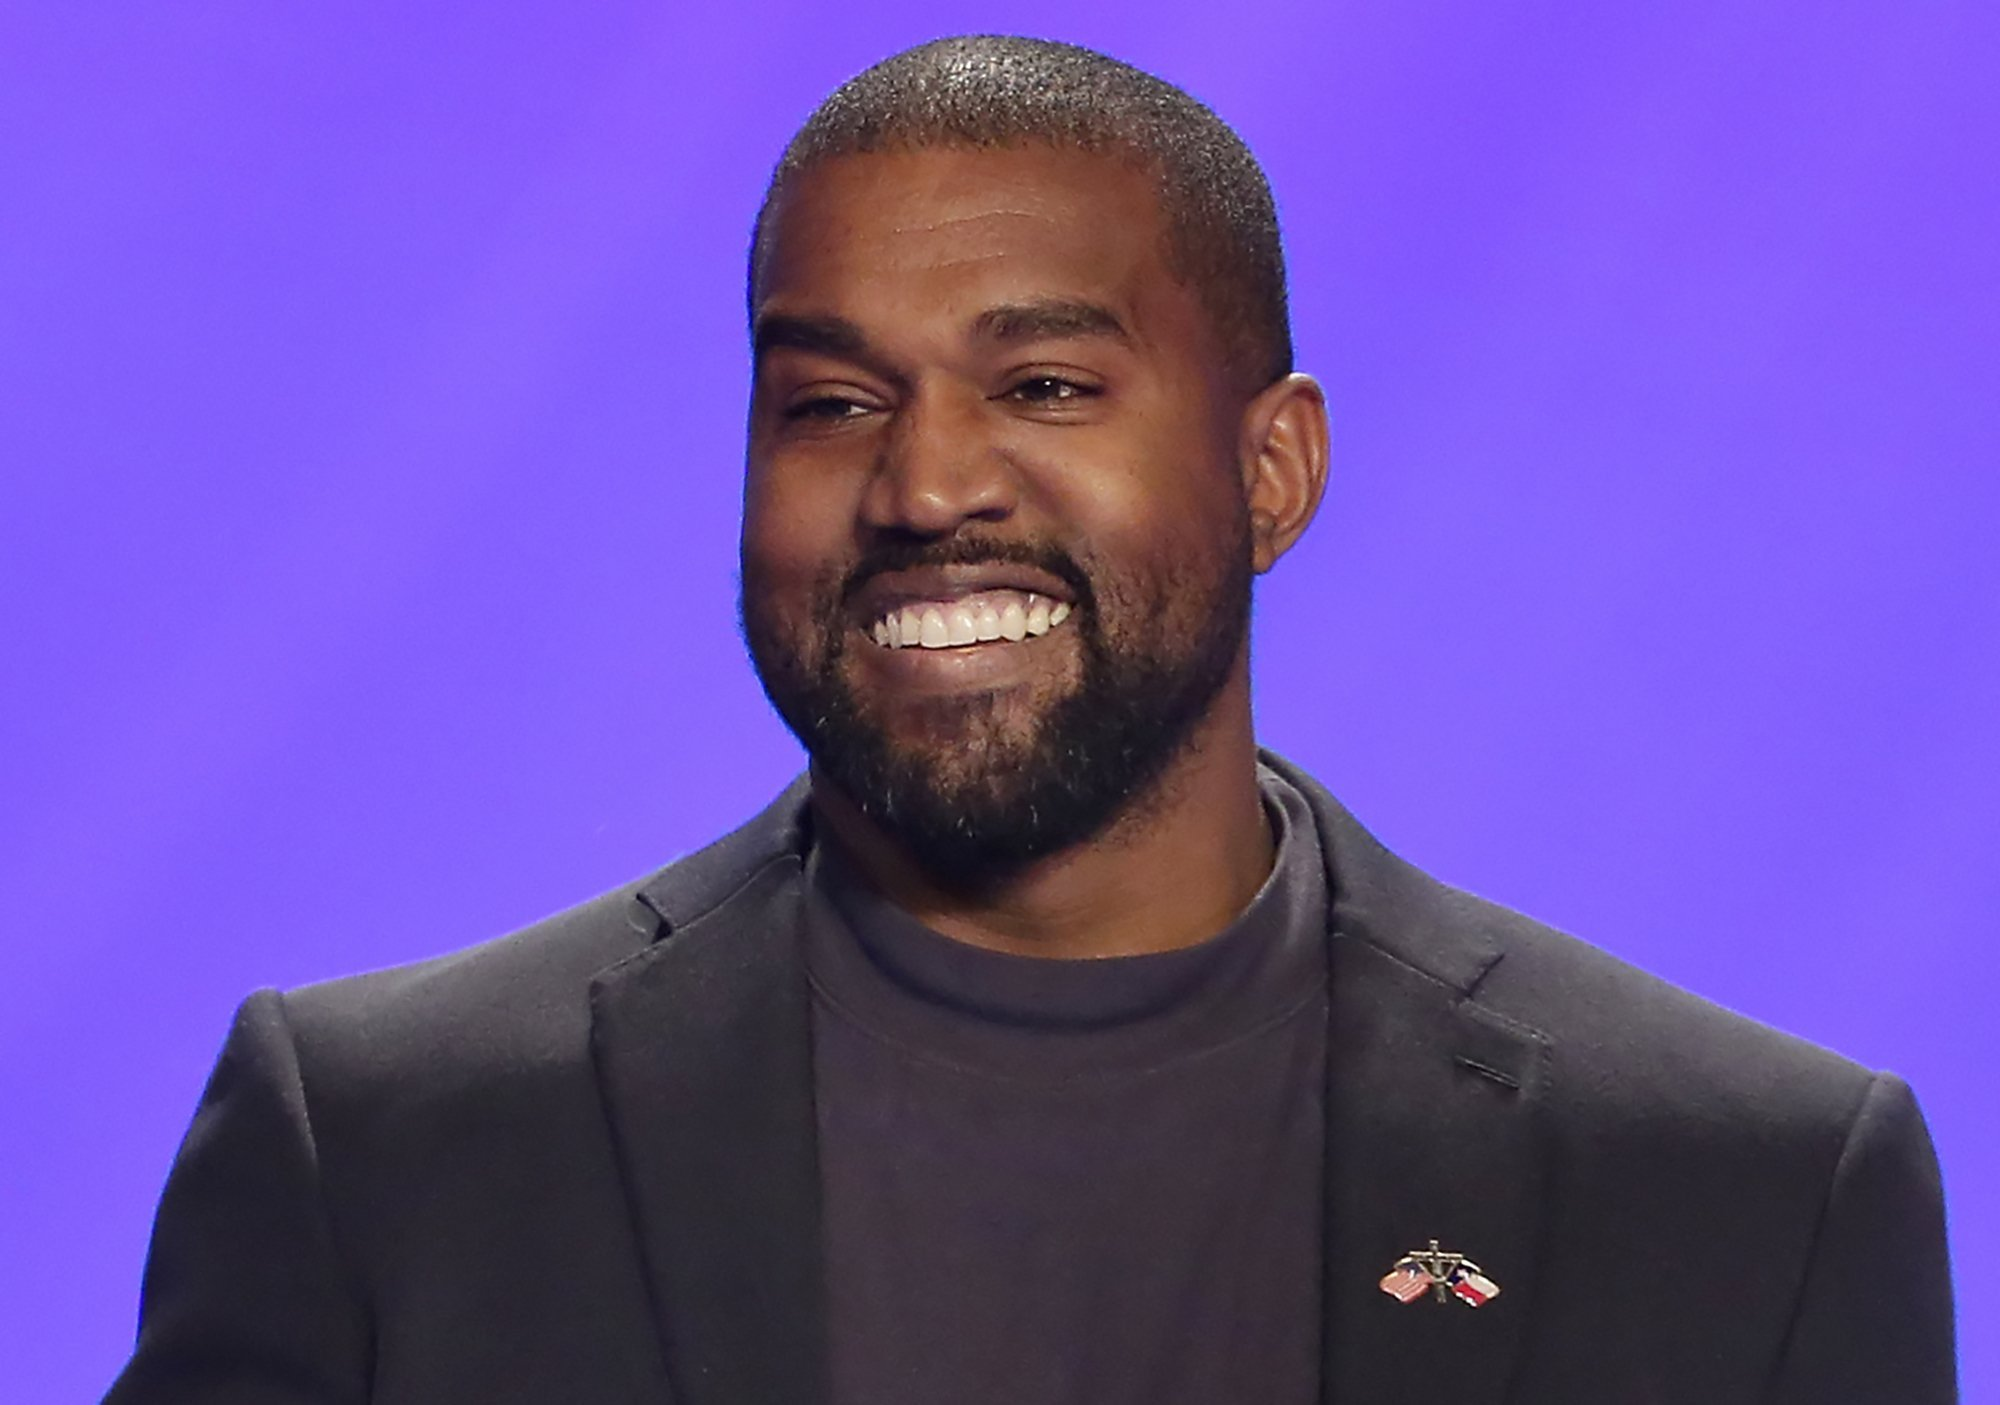 Kanye West Is Happiest At His Ranch While He And Kim Kardashian Continue To Live Separate Lives – He Has No Plans To Return To LA!